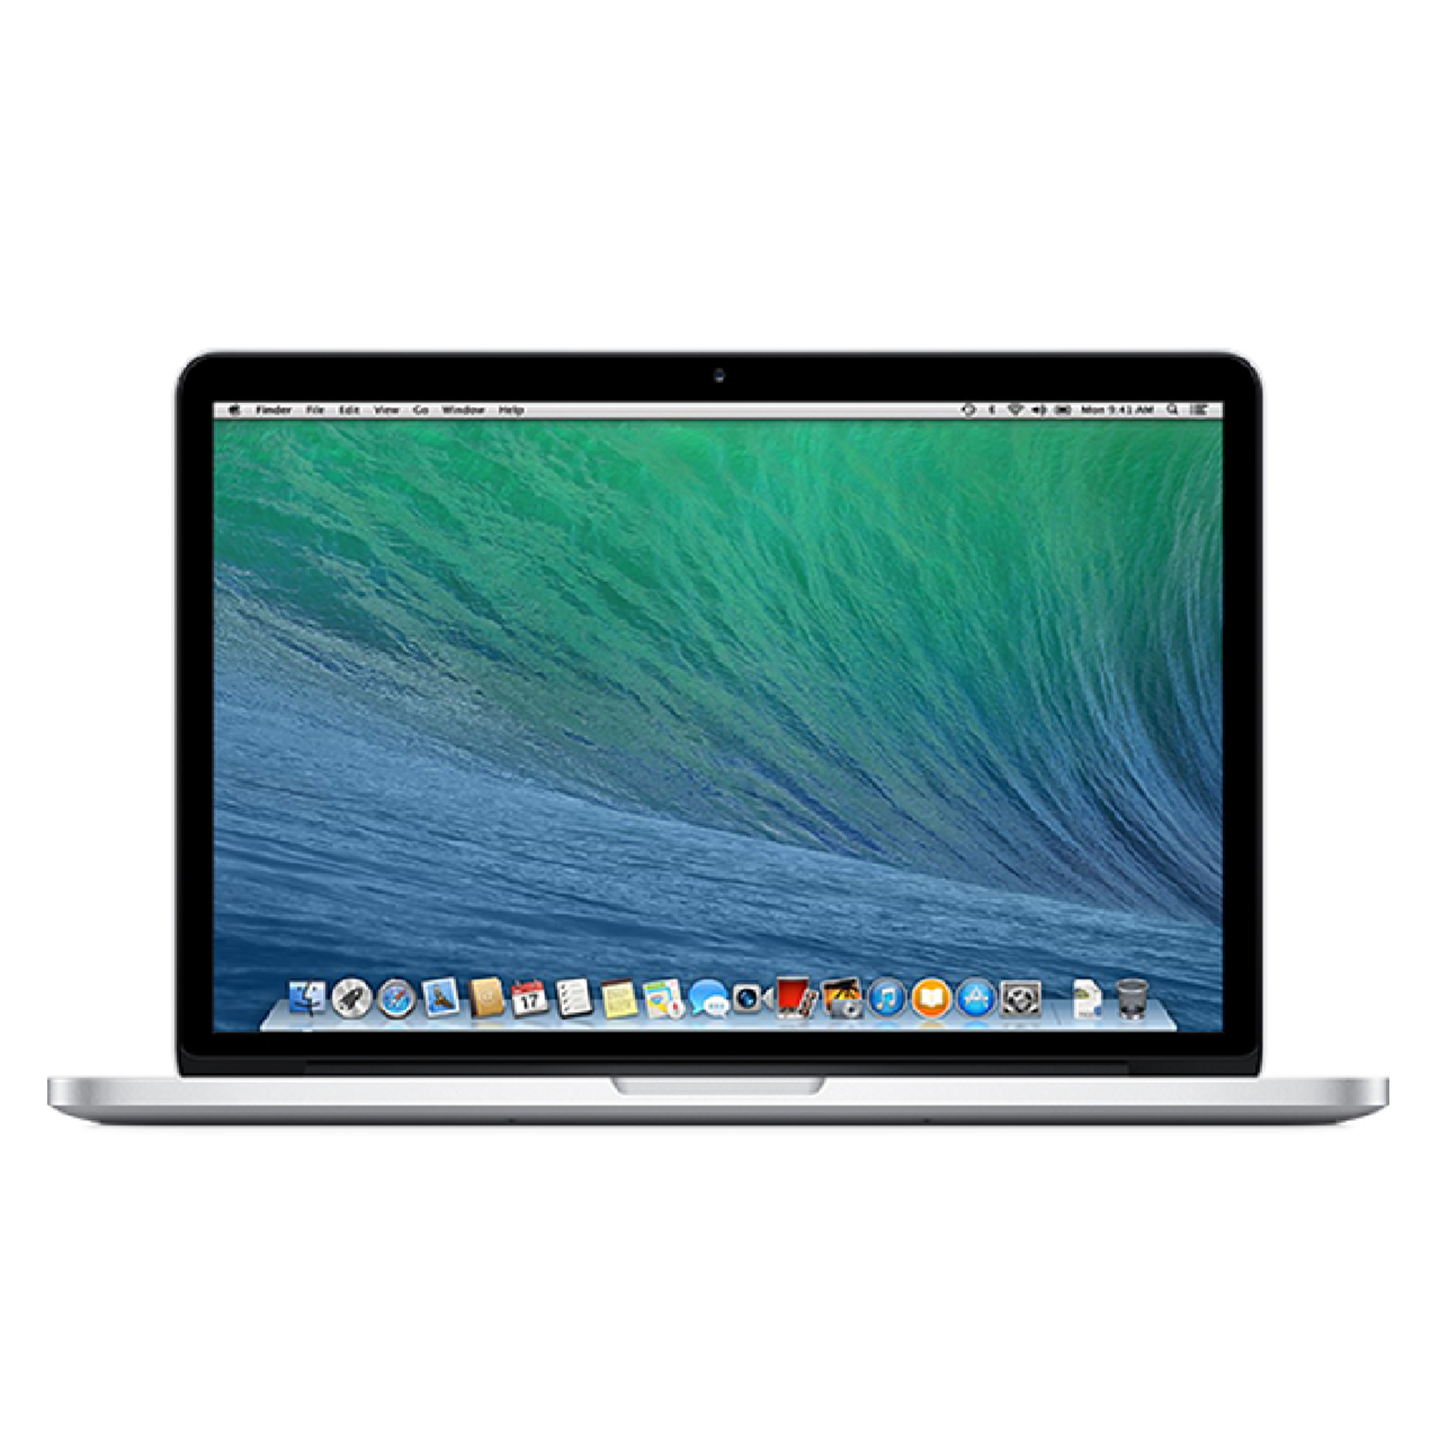 MacBook Pro (Retina, 13-inch, Late 2013)Core i5/8GB/SSD256GB E769